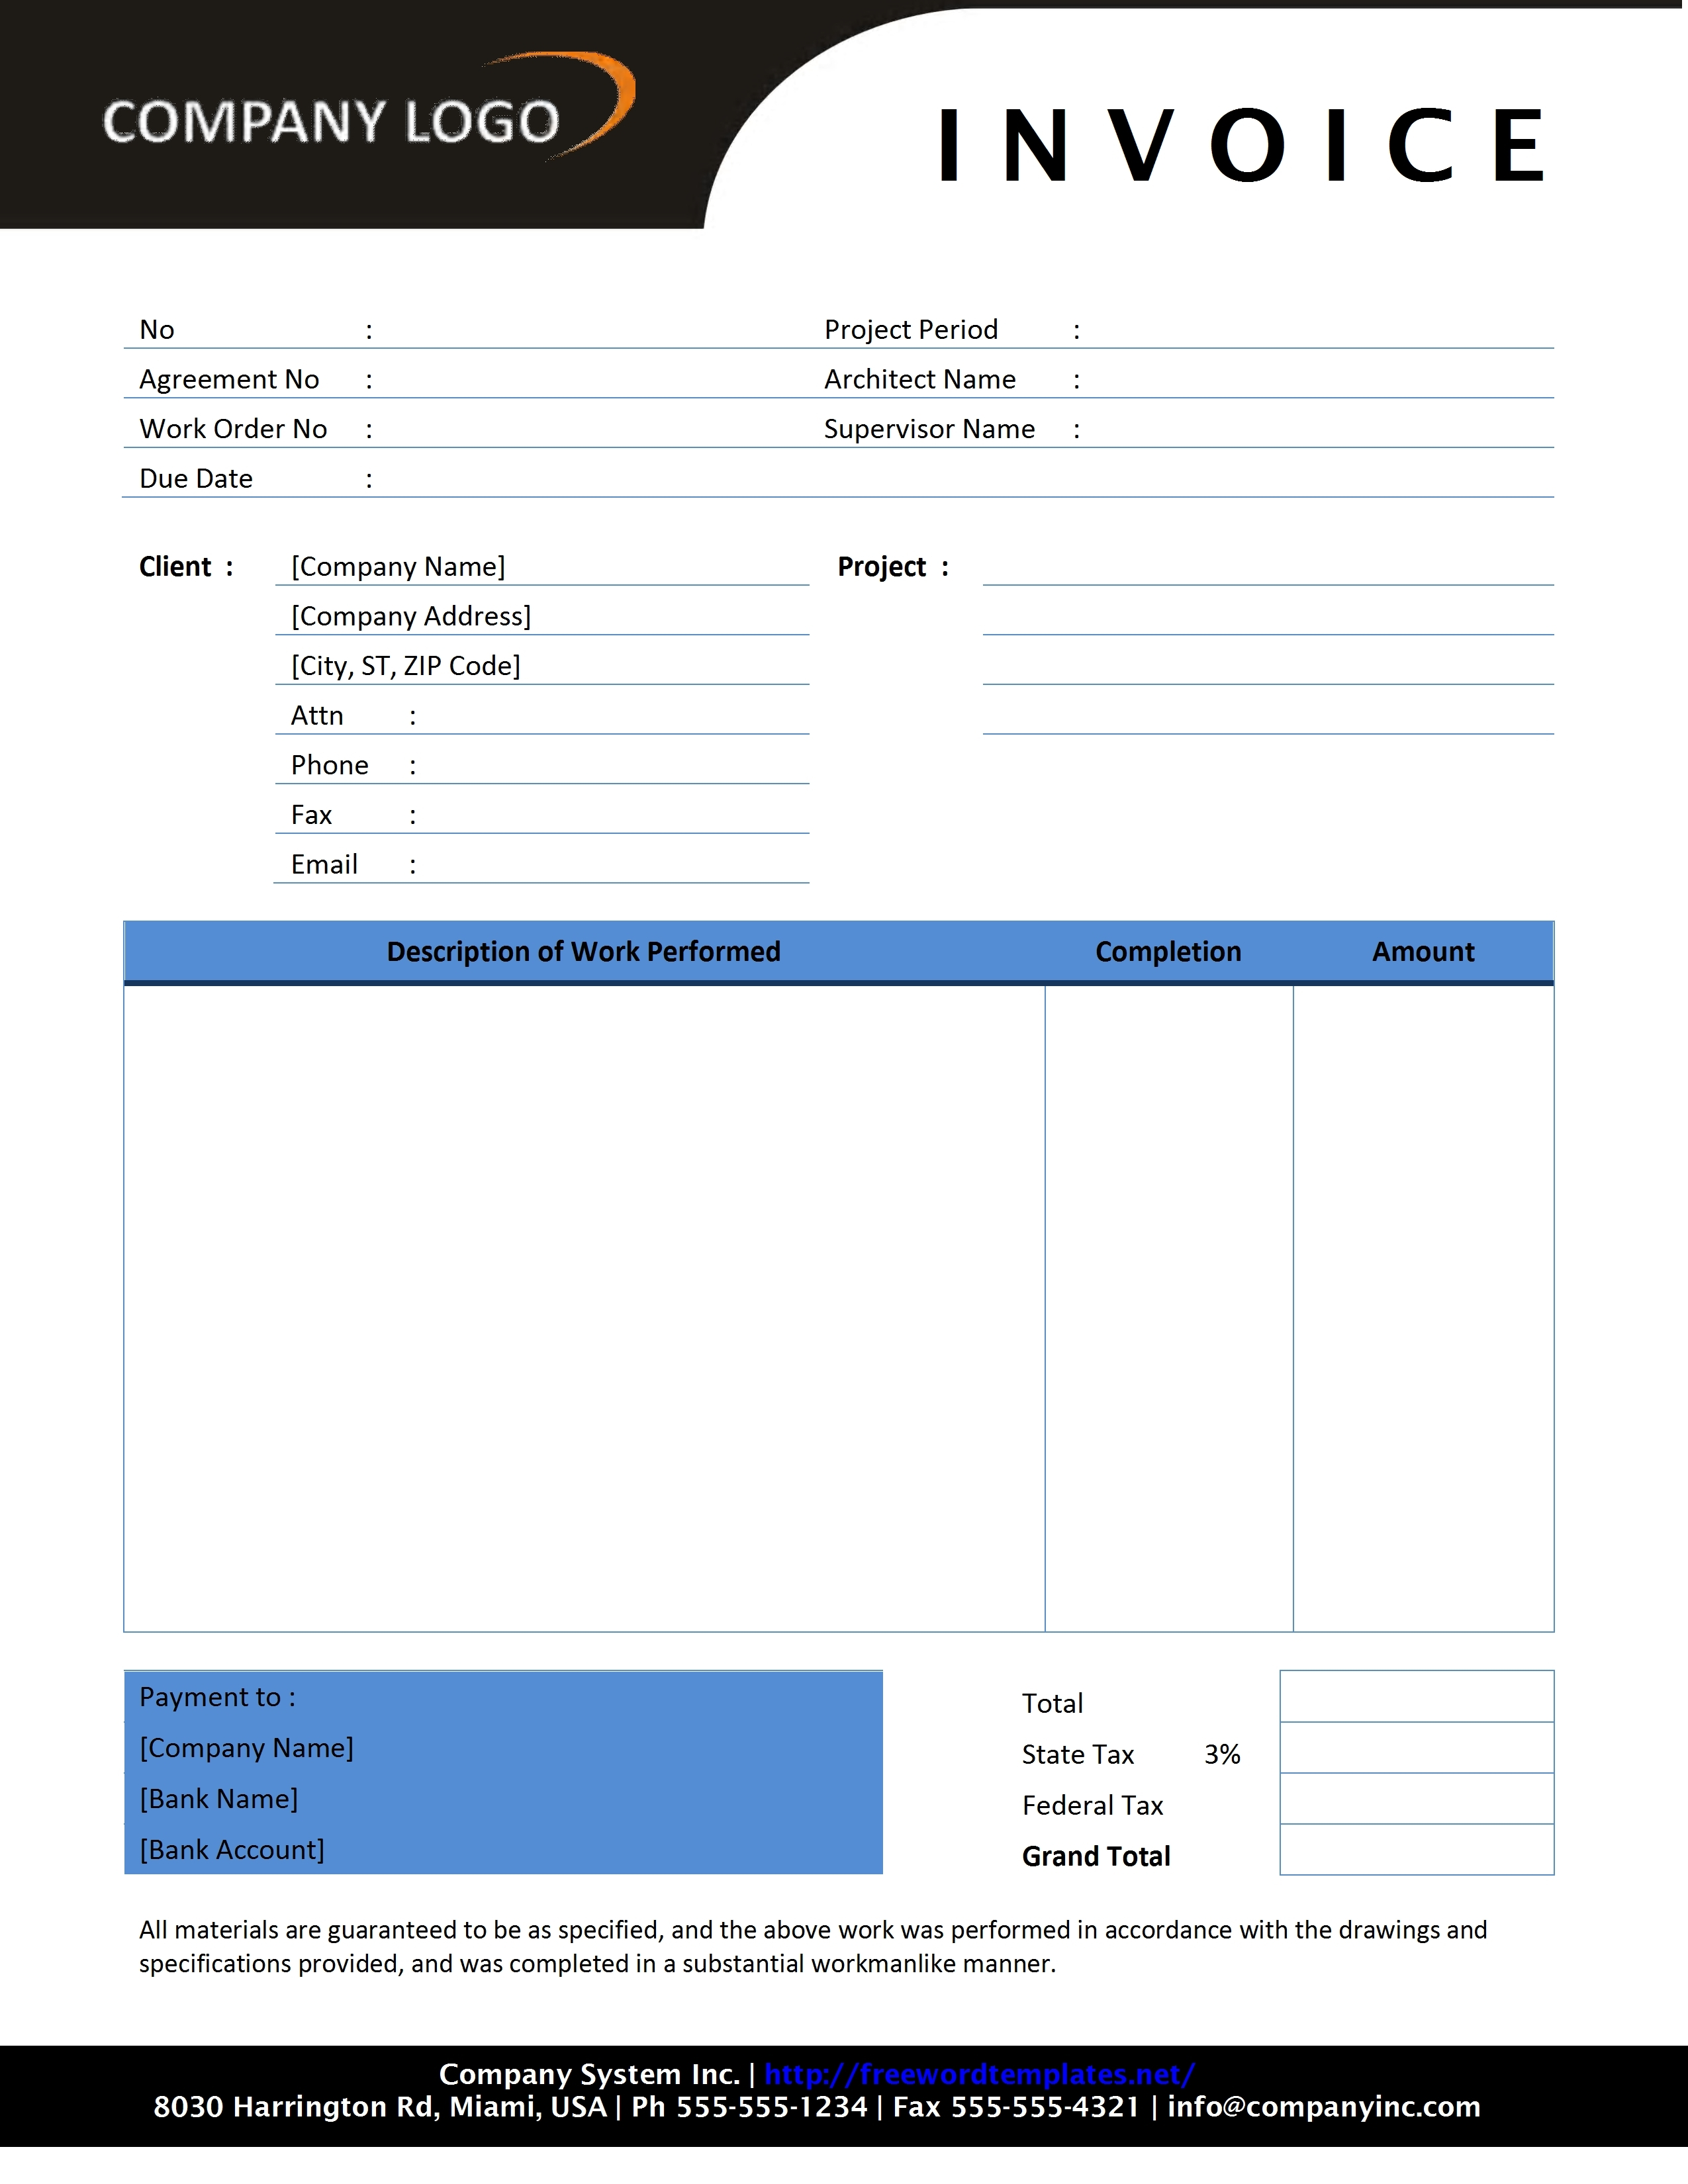 company invoice template word plumbing invoice template free microsoft word templates 2550 X 3300